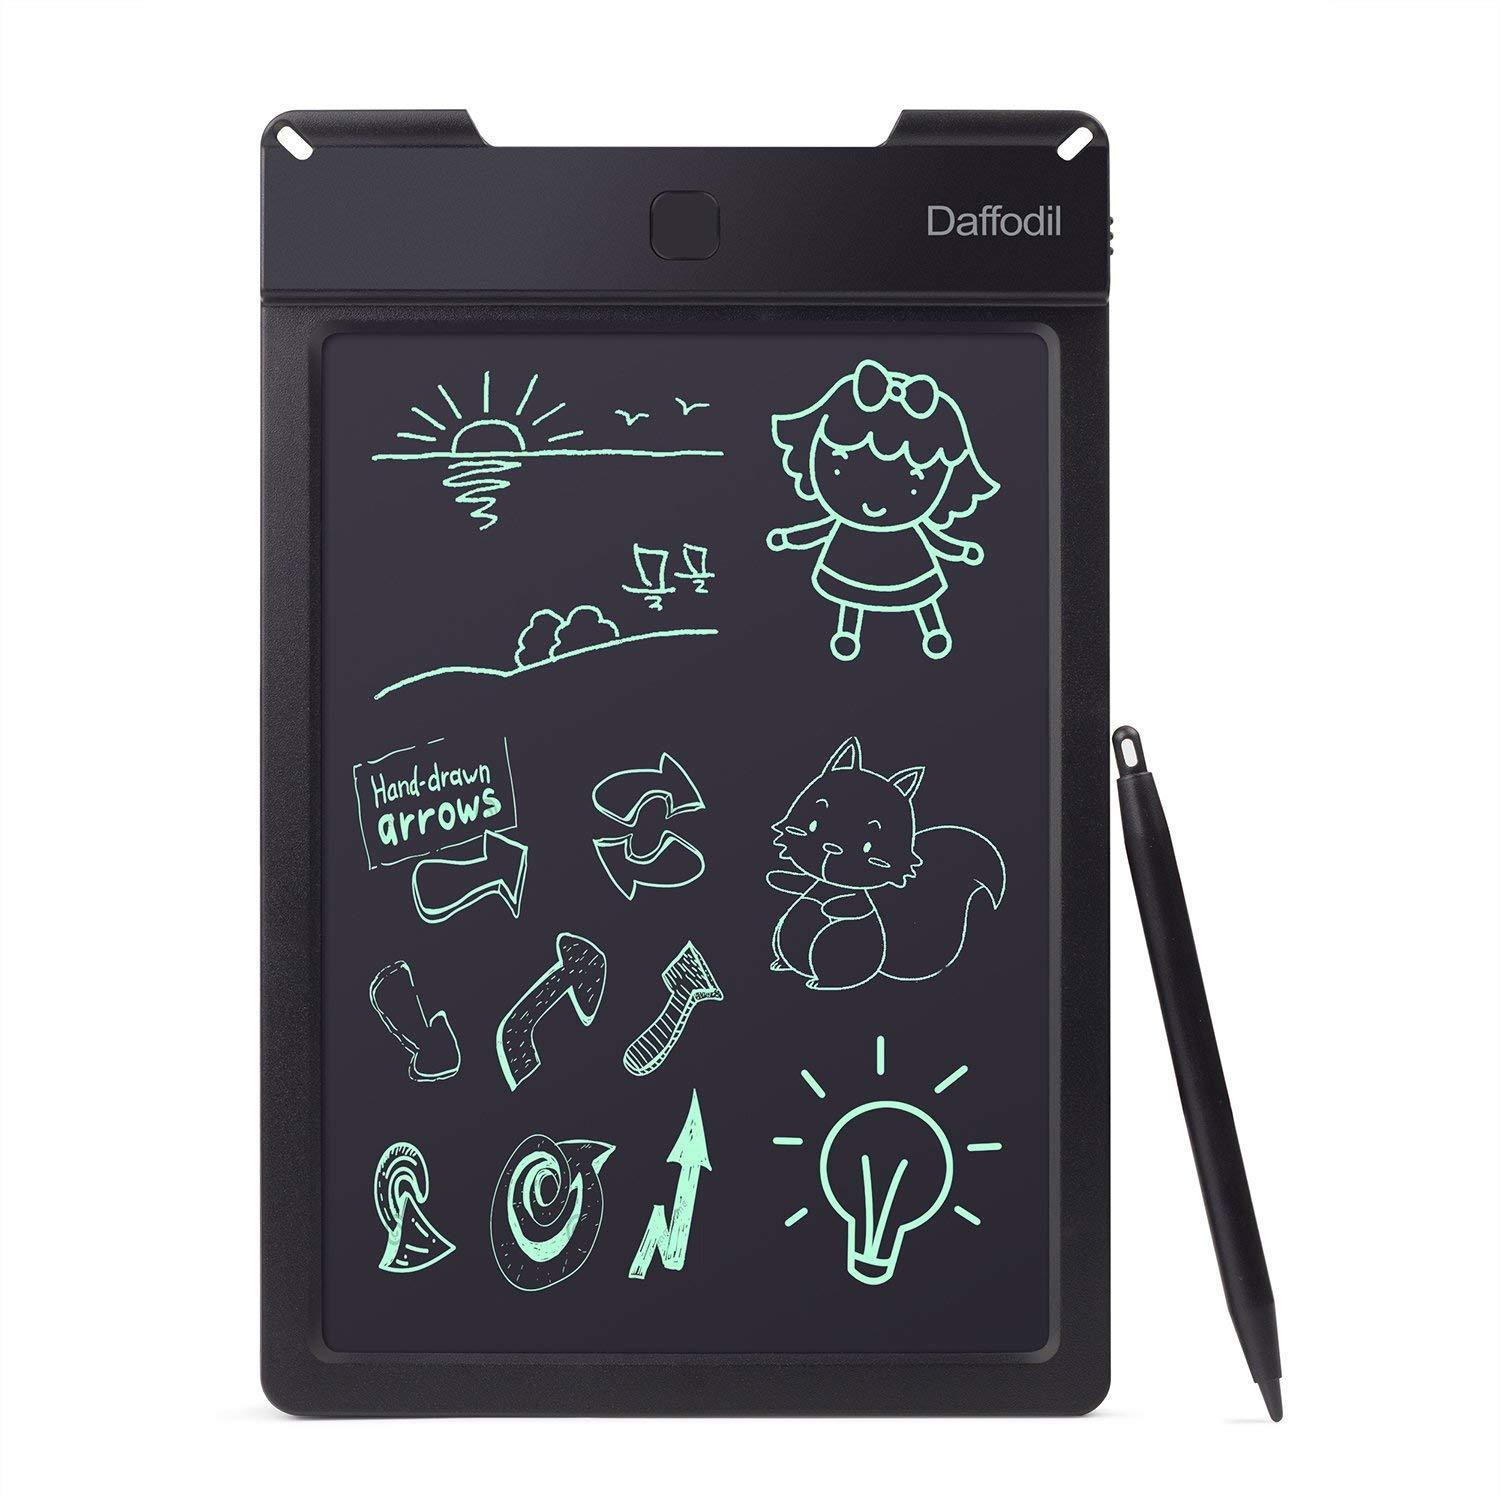 LCD Writing Tablet - Daffodil WT100 - 9 inch Digital Graphics Board with Pencil